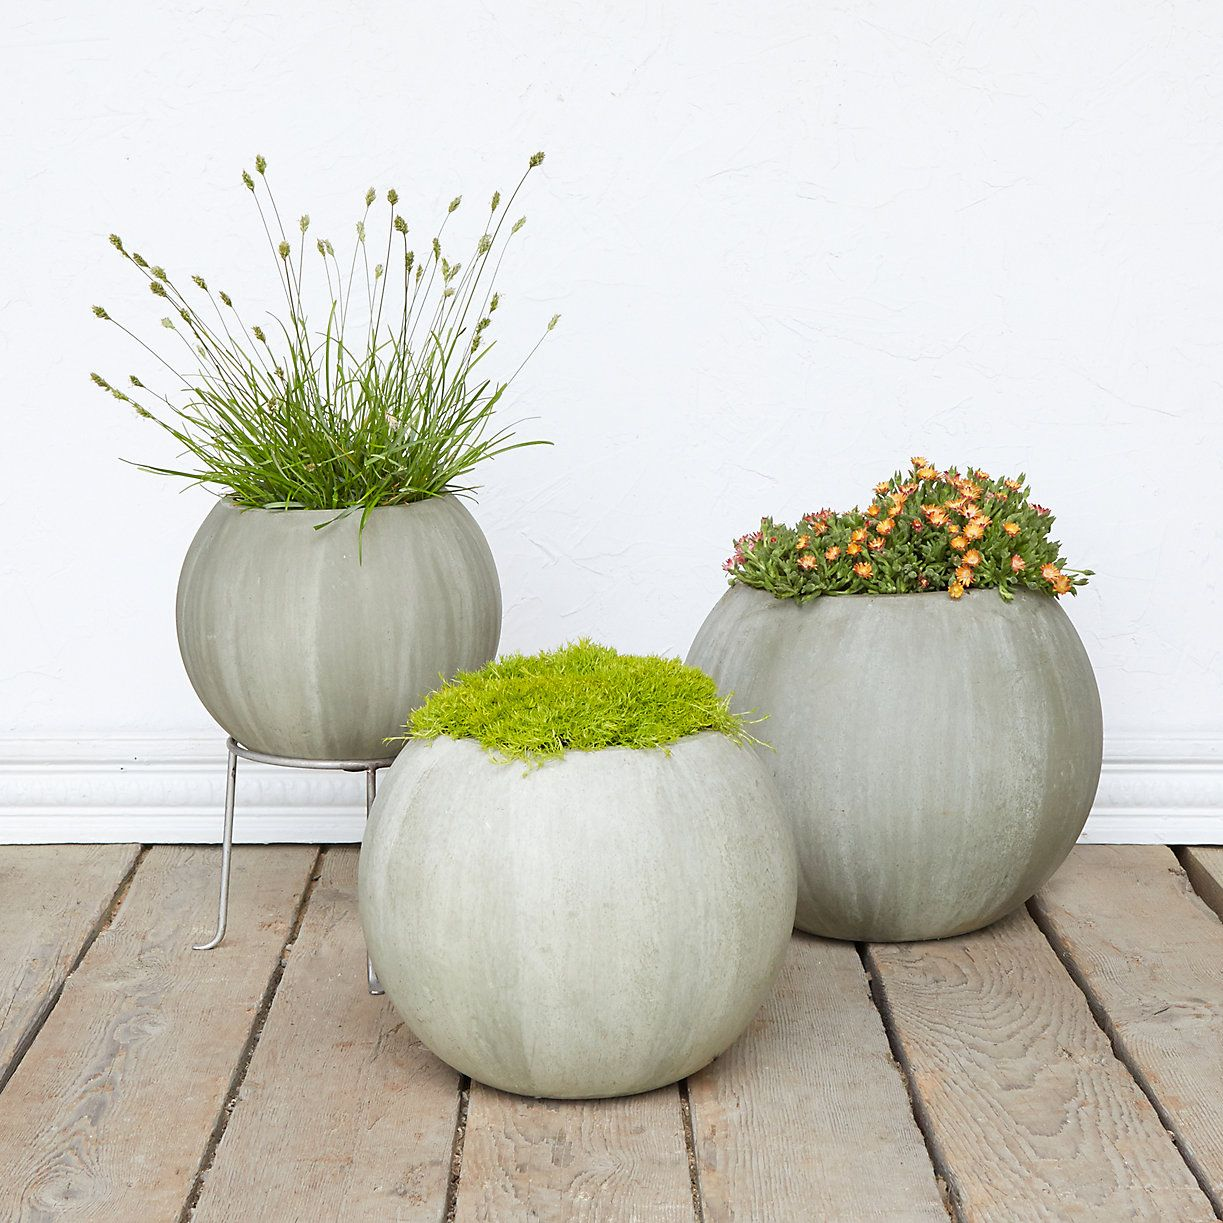 Concrete Garden Planters Mossy Sphere Planter Planters And Gardens